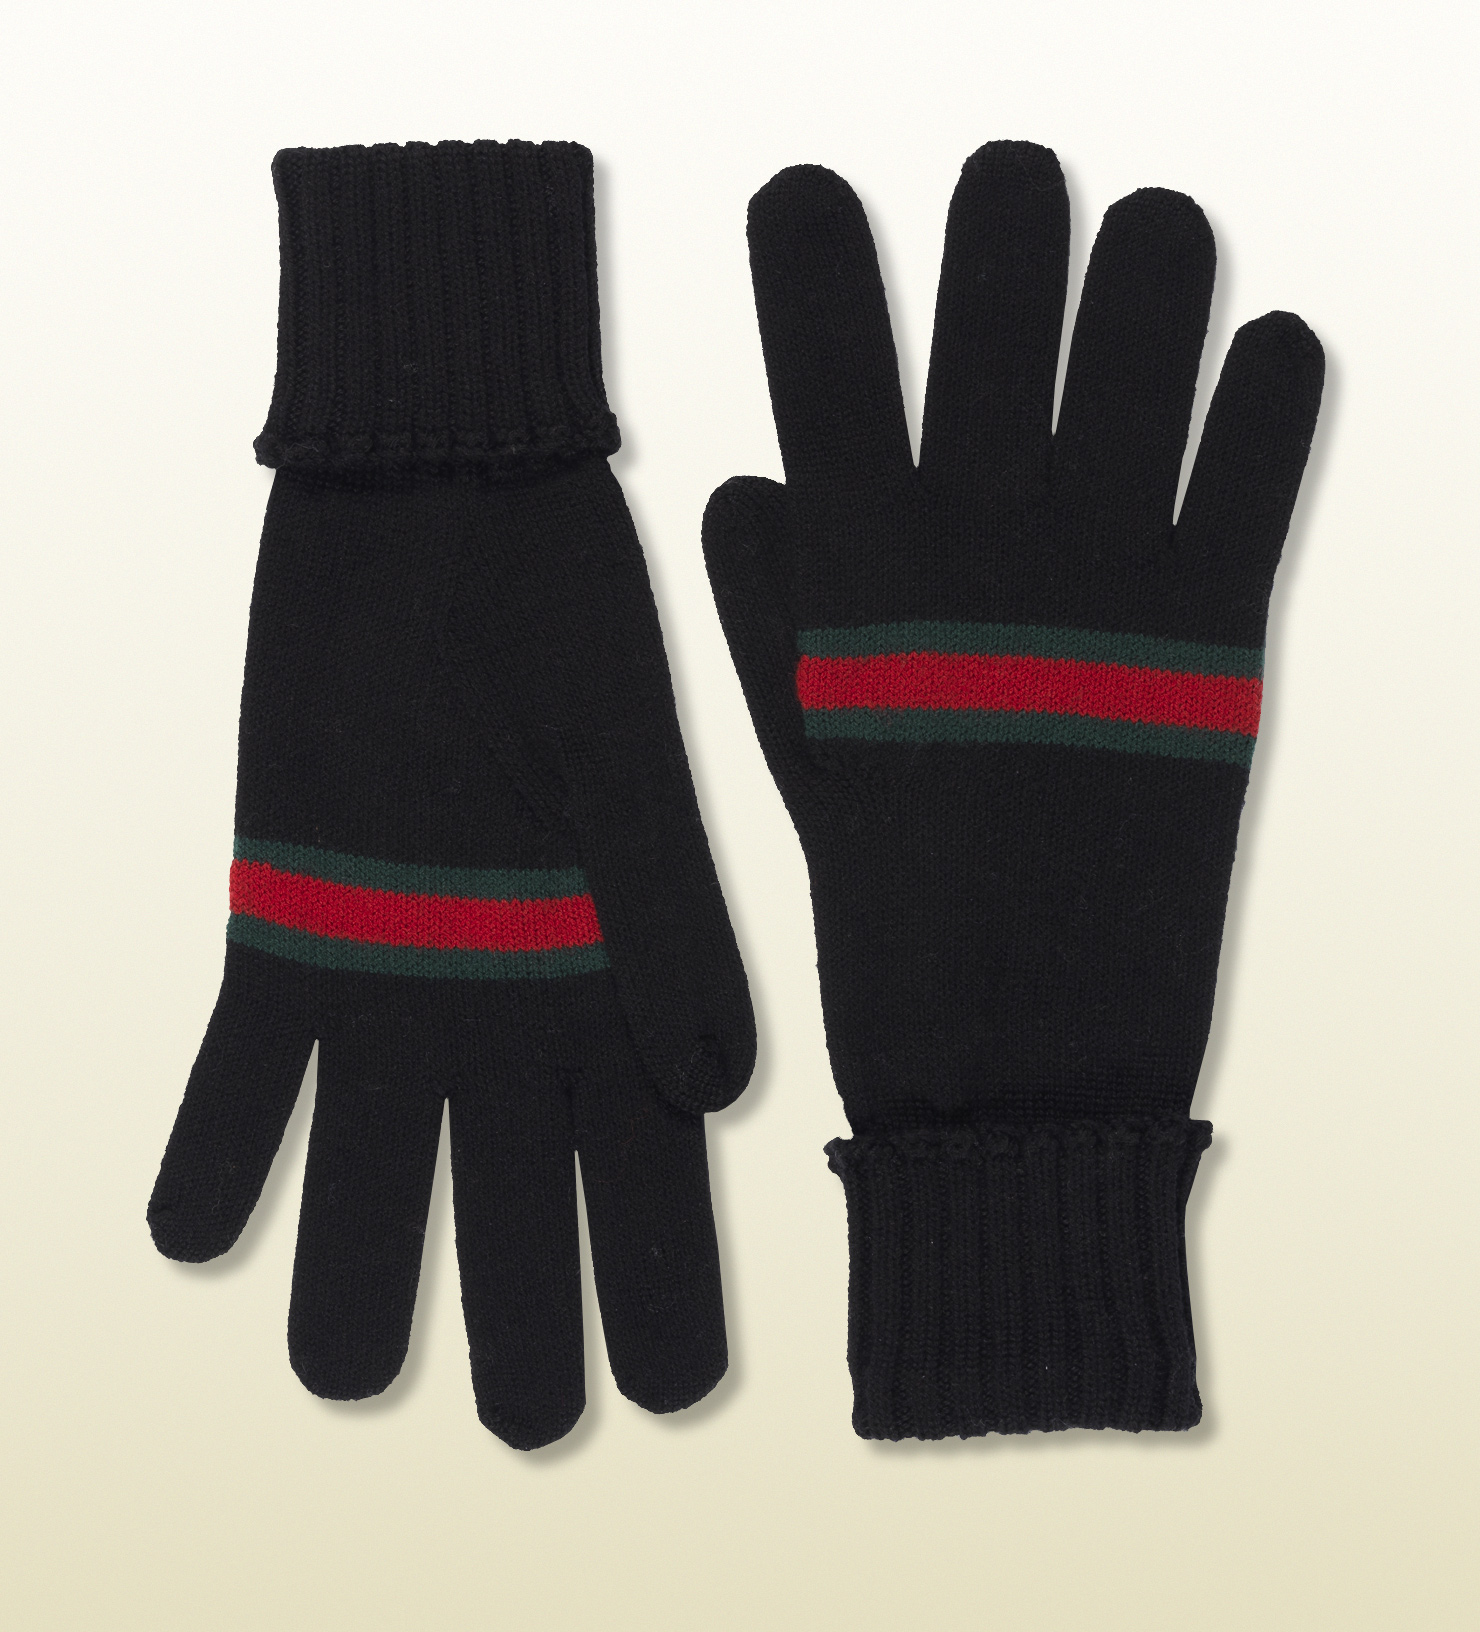 Mens leather gloves for iphone - Gucci Black Wool Gloves With Web In Black For Men Lyst